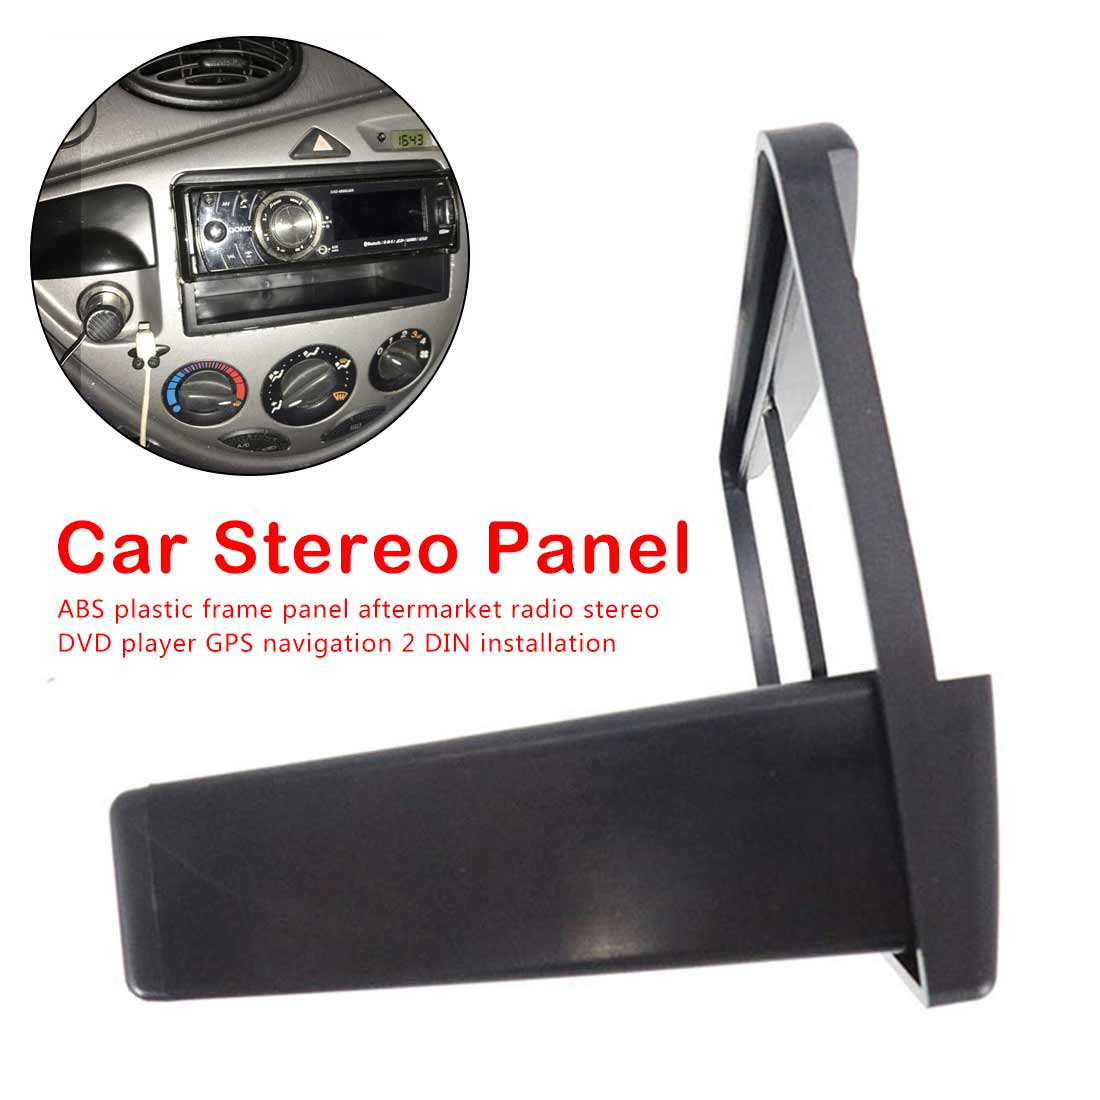 1 DIN DVD Fascia Panel Frame Car Stereo Radio Plate Audio Dash Mount Kit Adapter for Ford Fiesta Focus 1998 - 2006 image